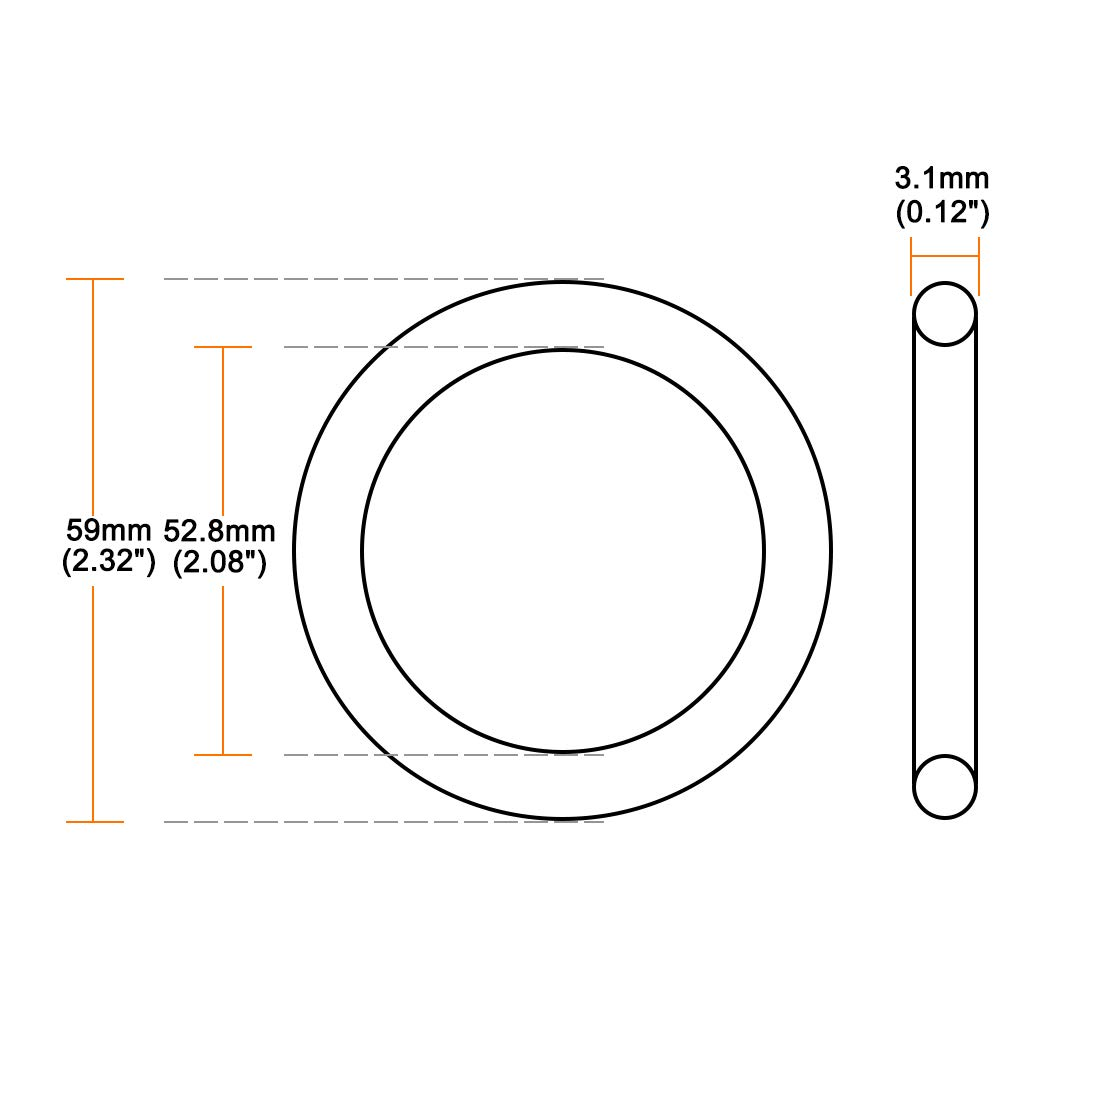 sourcing map O-Rings Nitrile Rubber 21mm Inner Diameter 29mm OD 4mm Width Round Seal Gasket